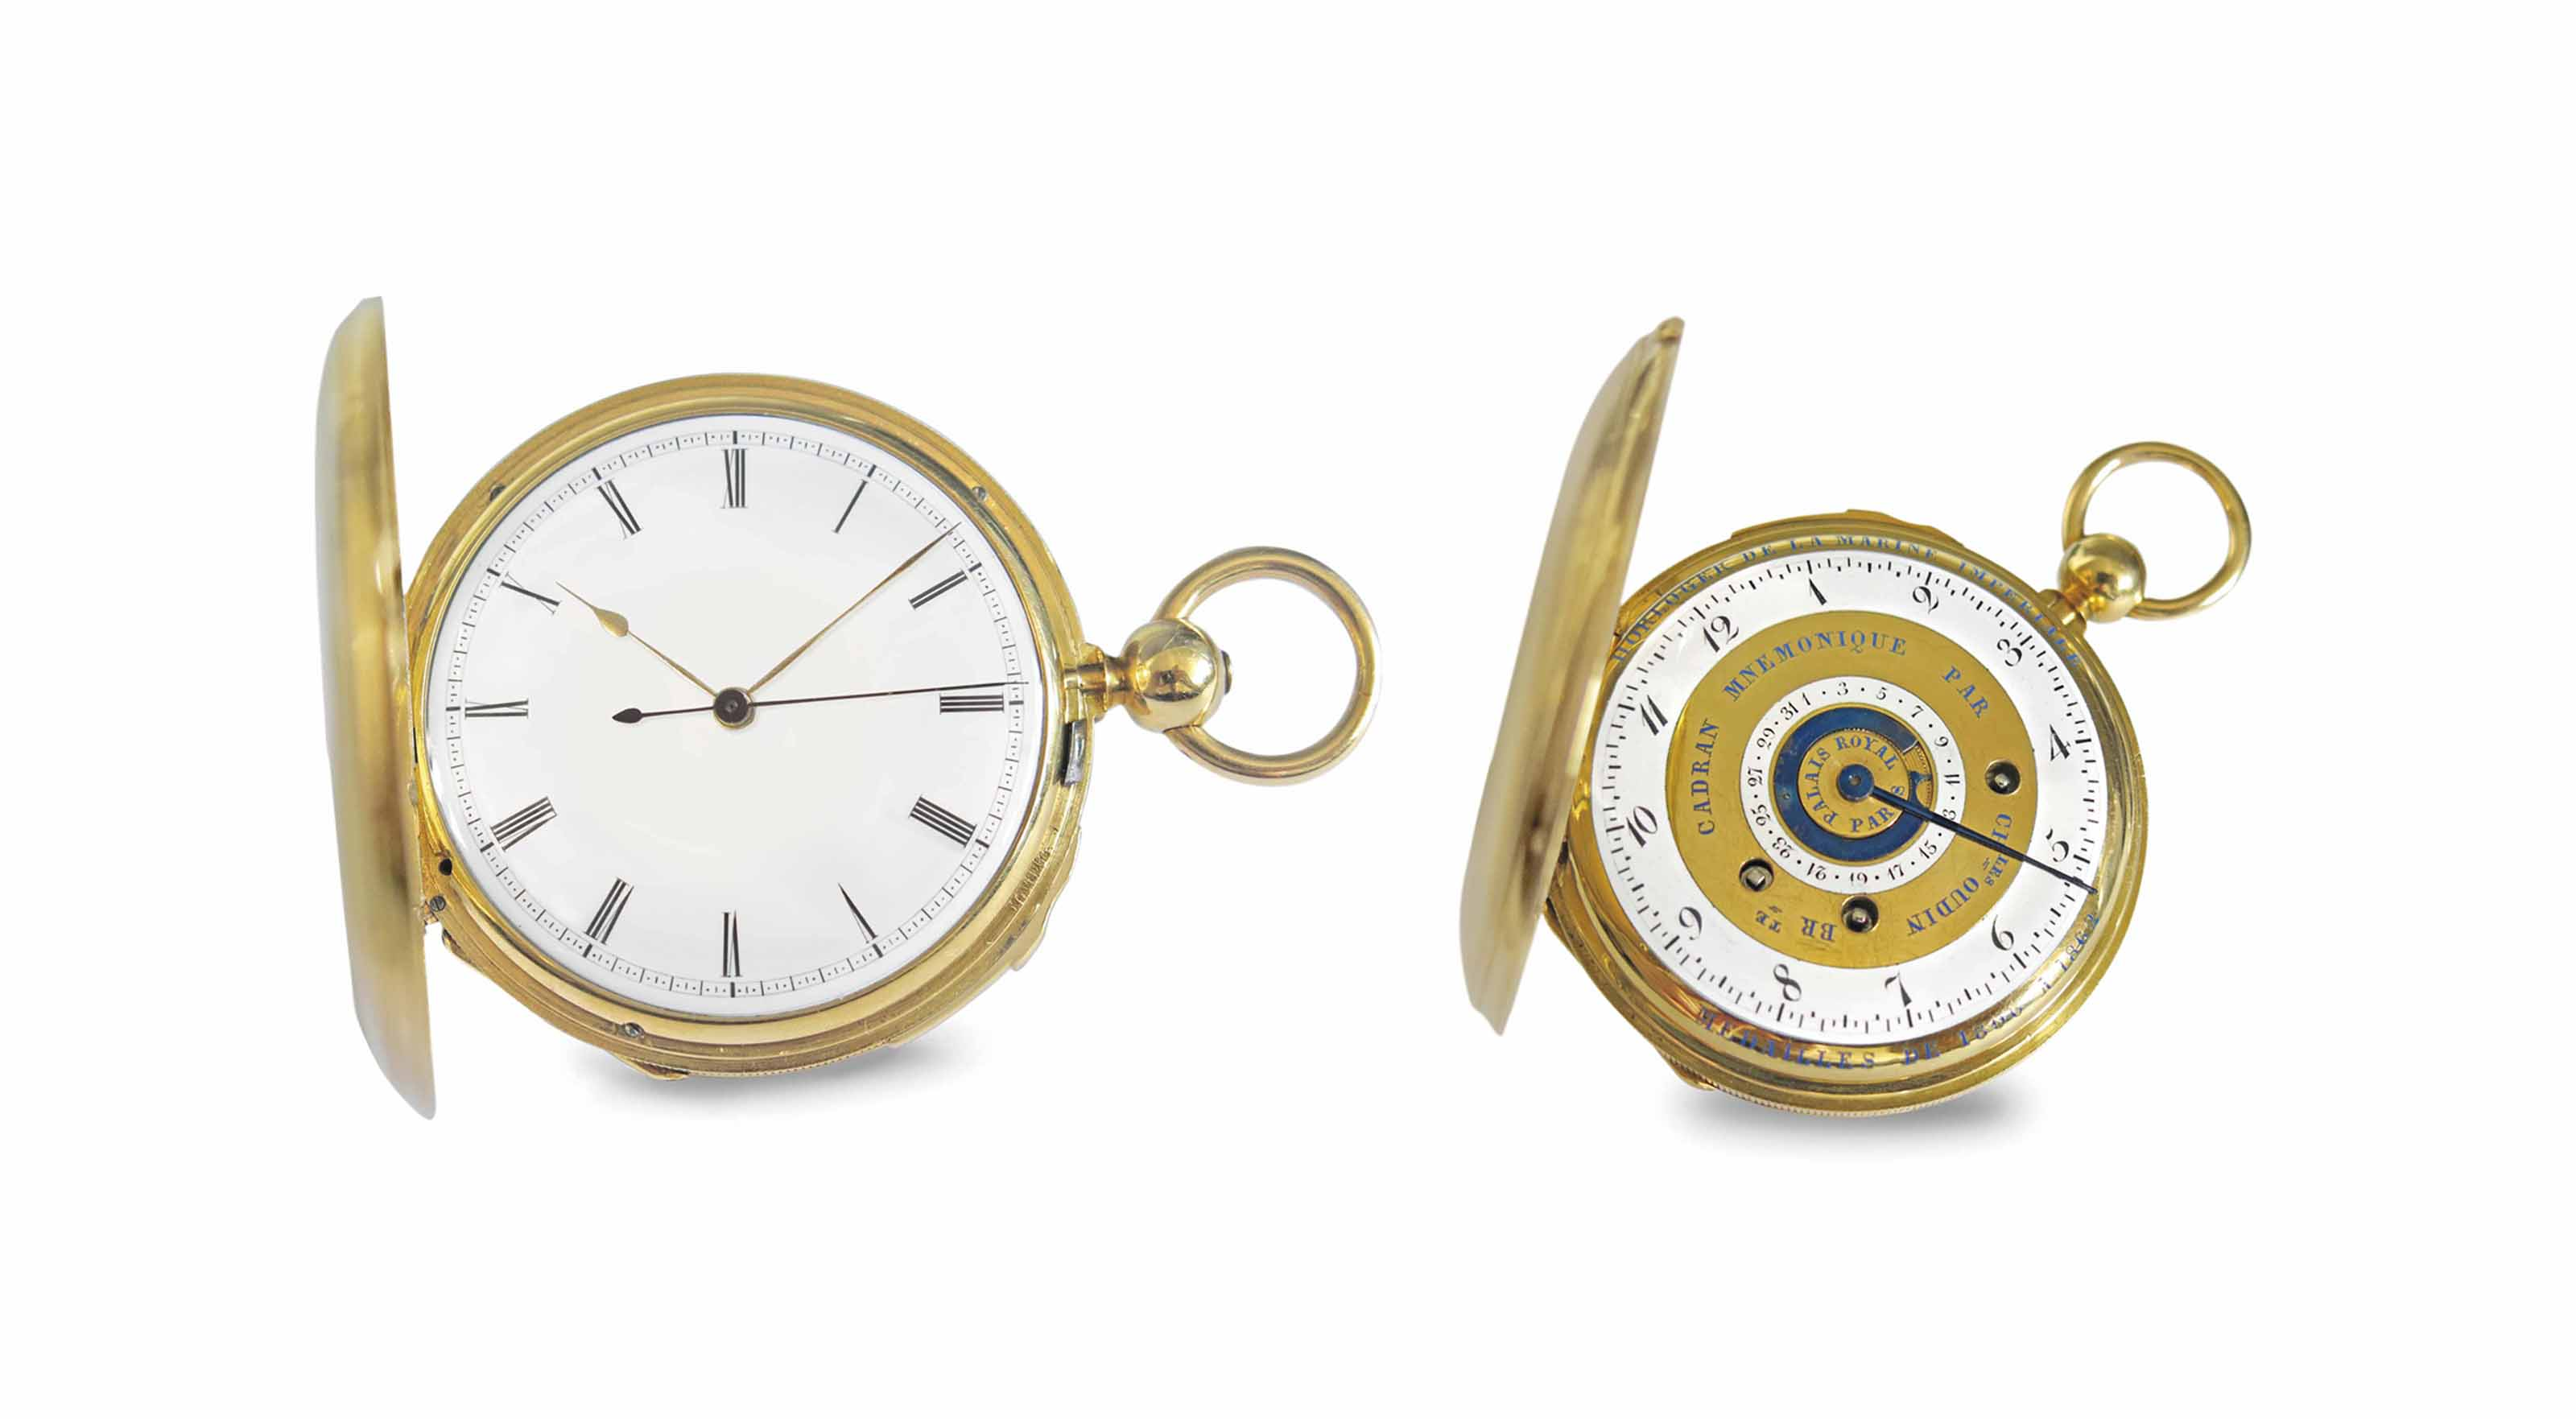 Charles Oudin. A highly rare and unusual 18K gold hunter case two train quarter repeating keywound lever watch with independent dead centre seconds and patented mnemonic dial